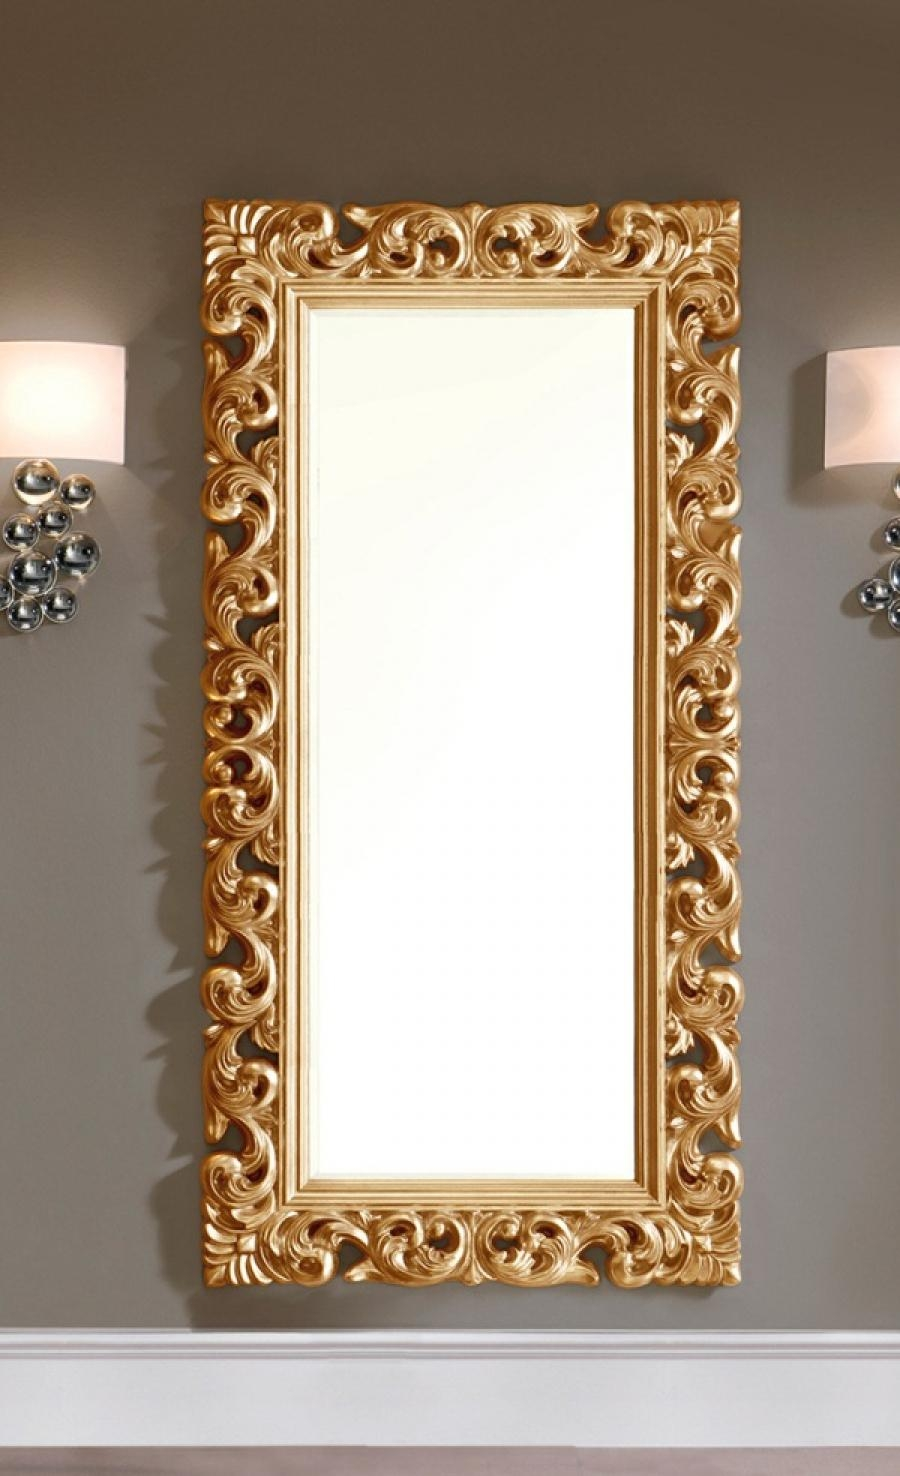 Large Modern Ornate Mirror In Gold Colour Finish Intended For Gold Ornate Mirror (Image 8 of 15)